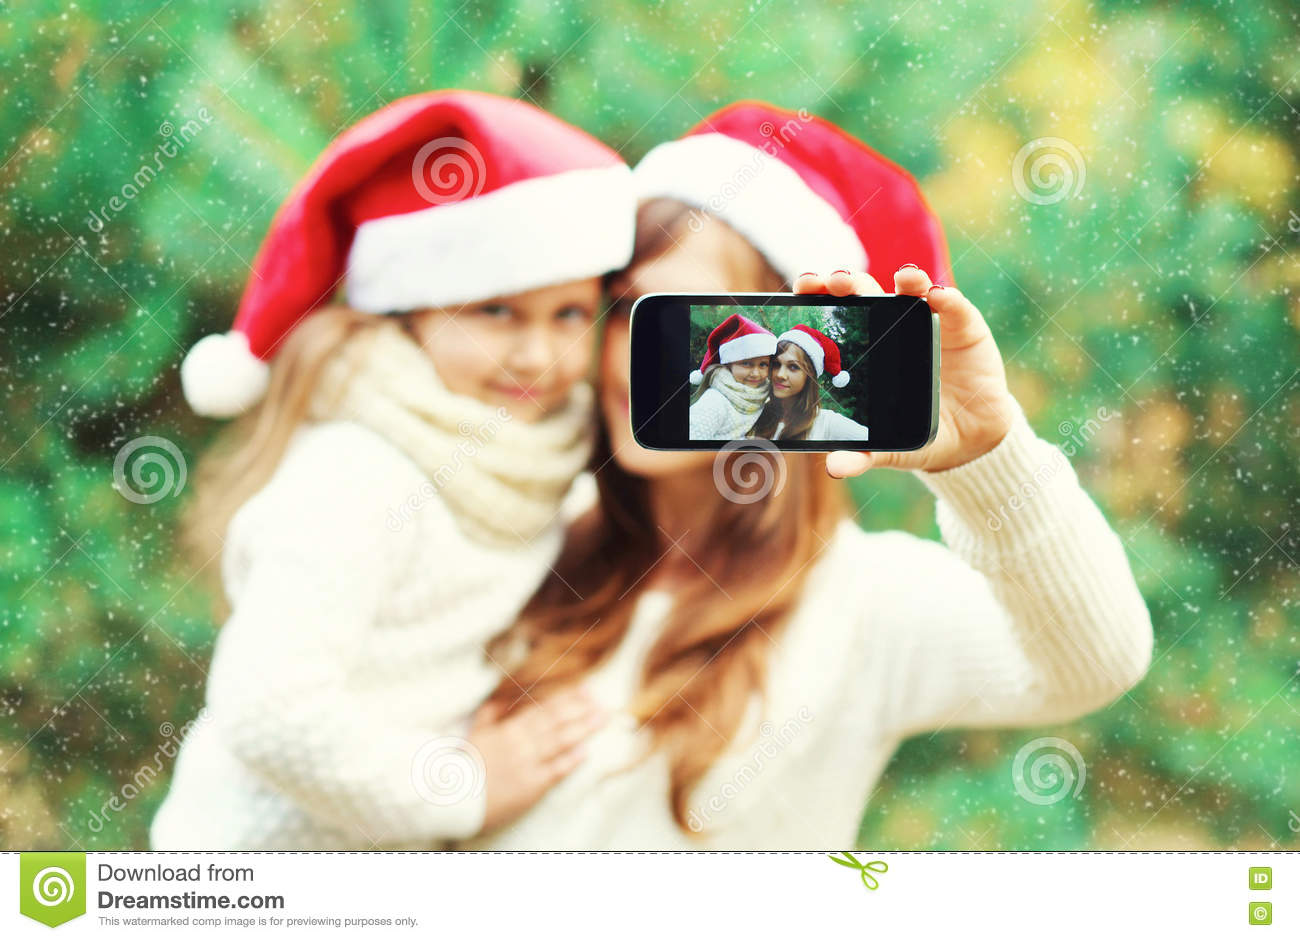 Christmas mother and child taking picture self portrait on smartphone together, closeup, blurred background